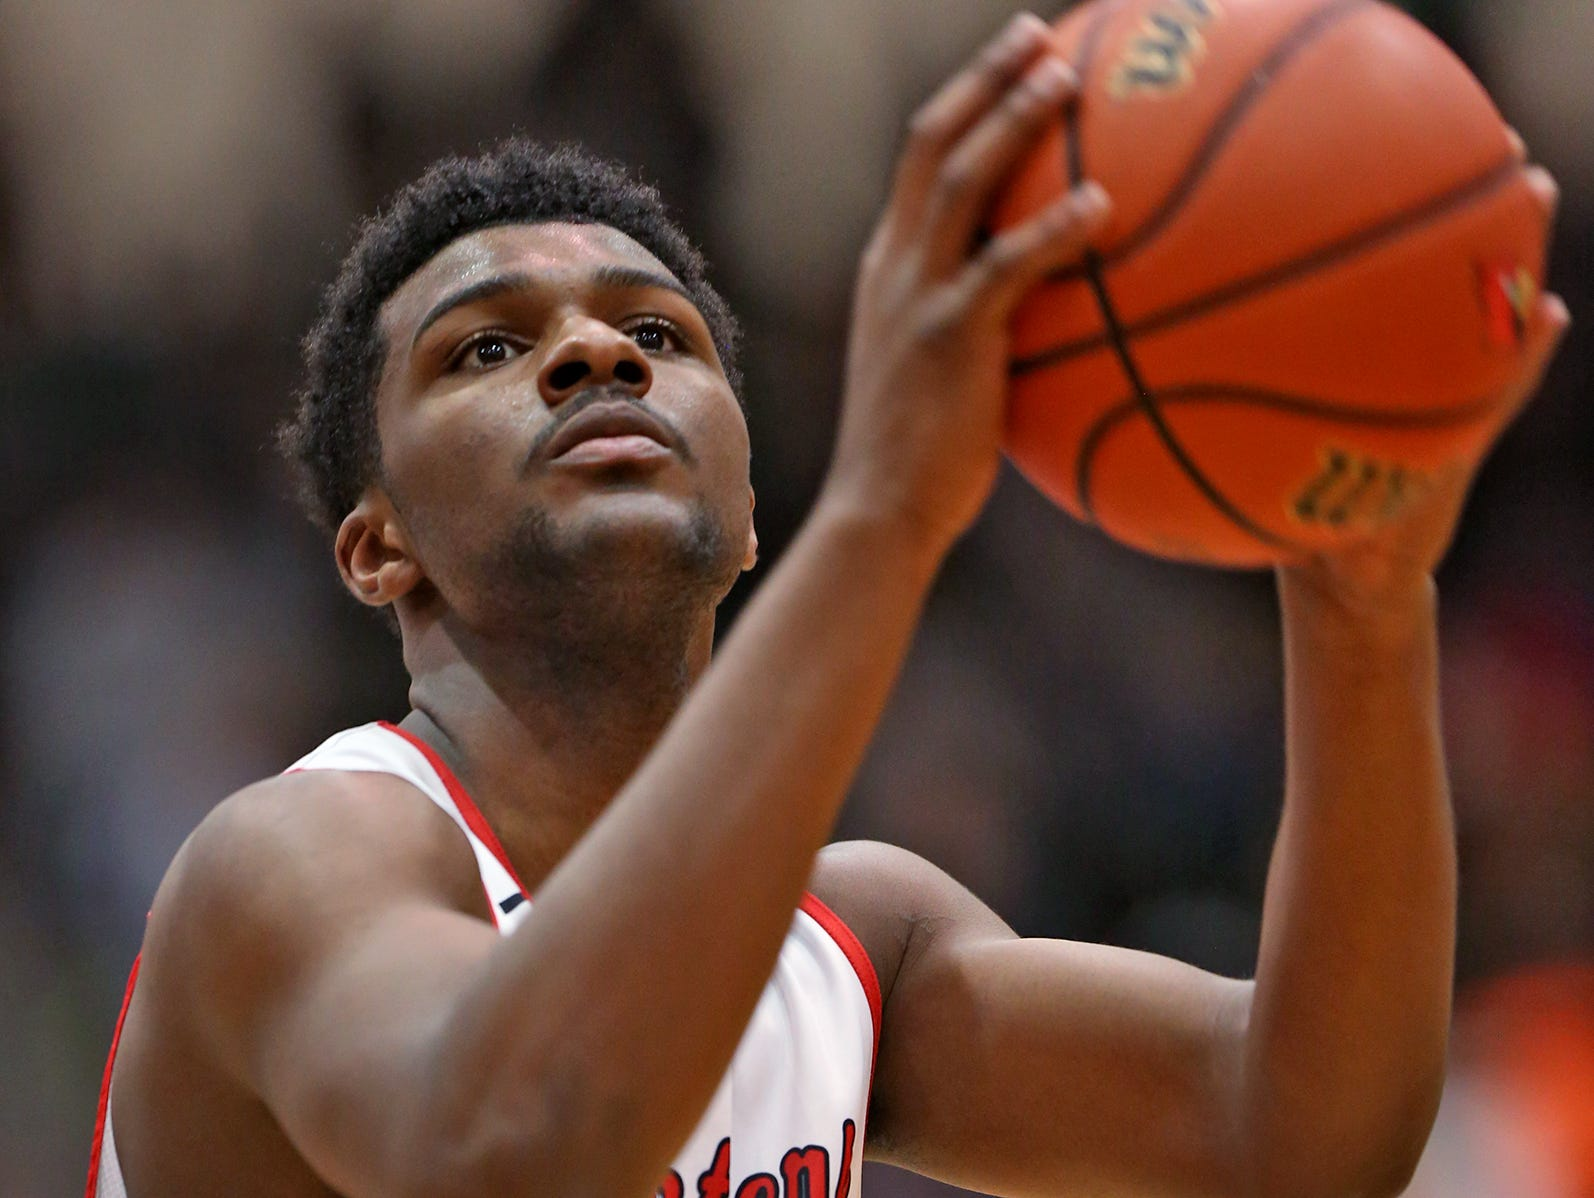 FILE -- North Central's #14 Emmanuel Little from earlier this season. He starred for the Class 4A No. 1 Panthers on Wednesday night.